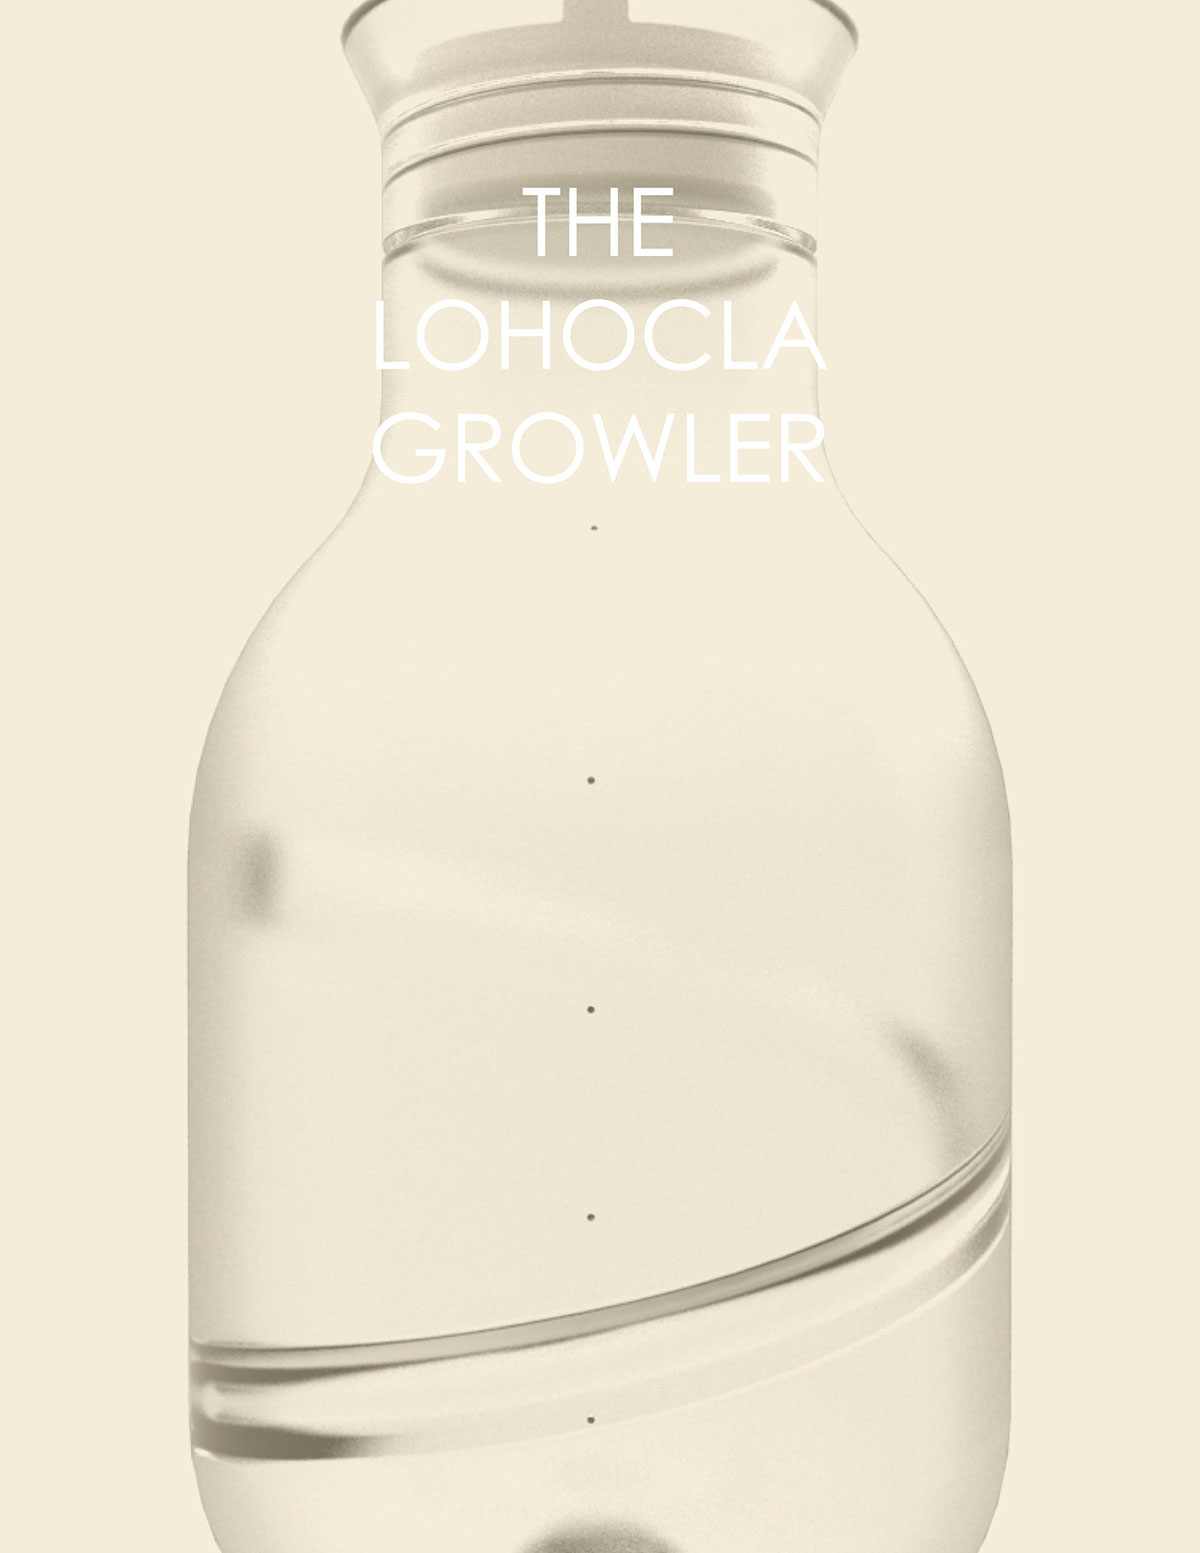 Lohocla Growler - Phase One